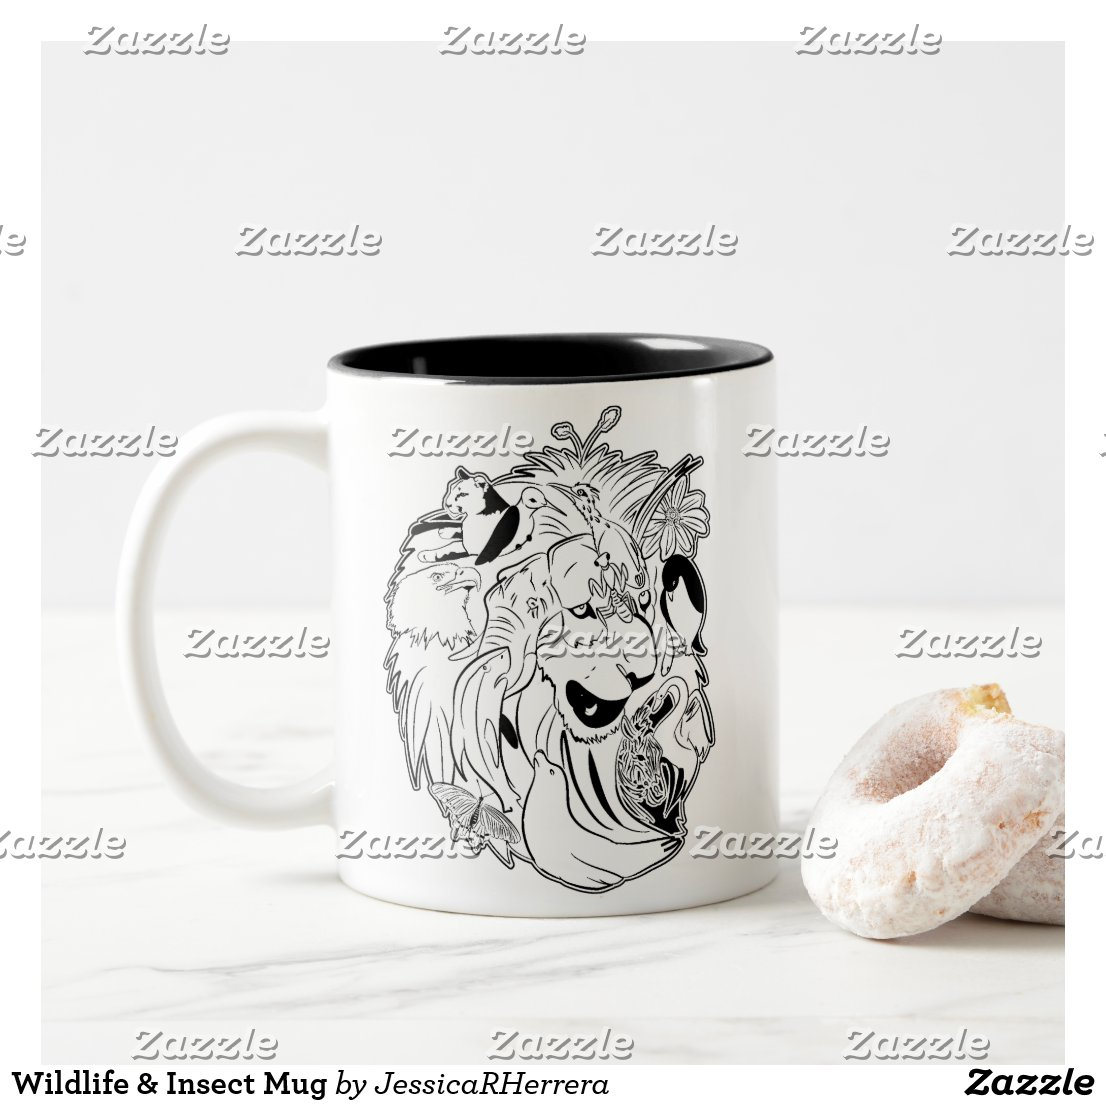 Wildlife & Insect Mug